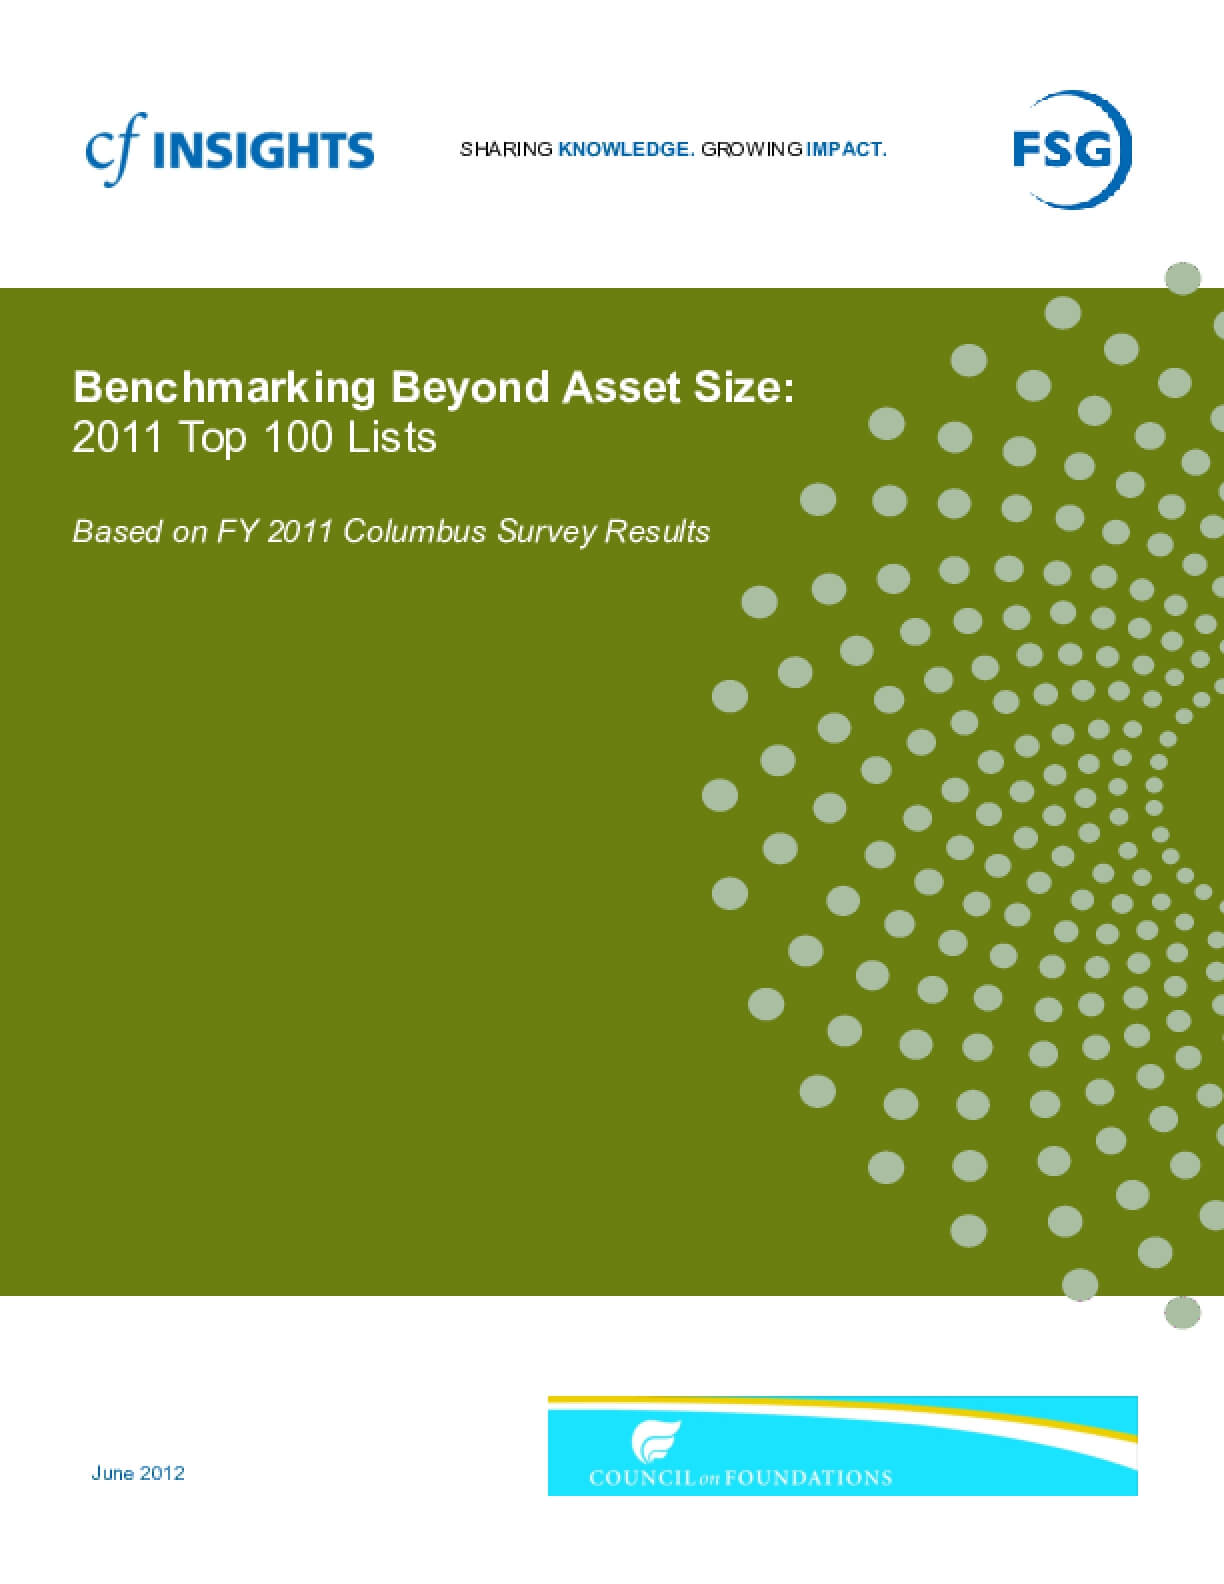 Benchmarking Beyond Asset Size Top 100 Lists - FY 2011